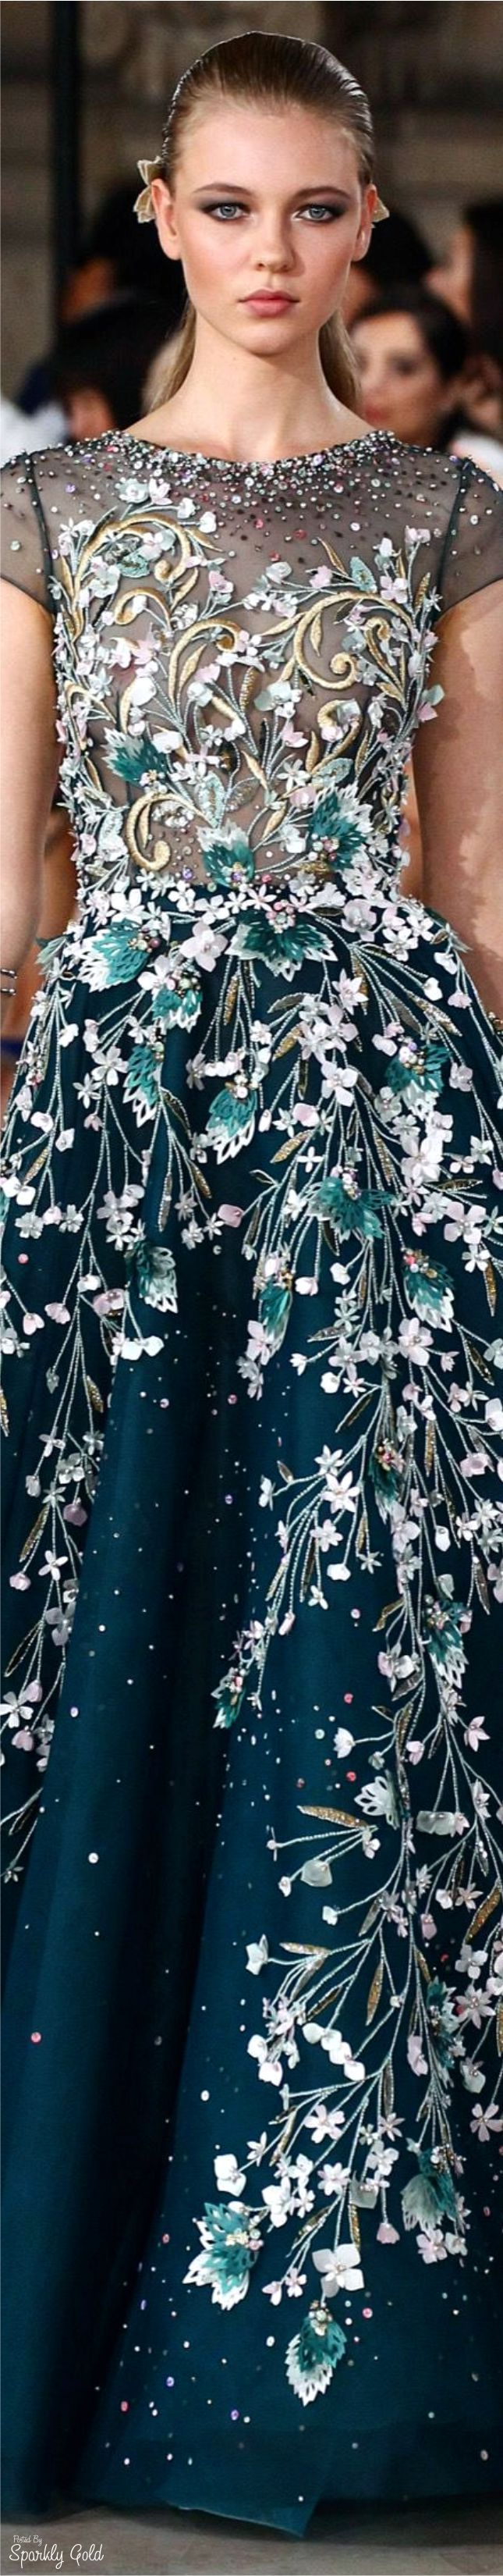 Georges Hobeika Fall 2016 Couture Clothing, Shoes & Jewelry : Women : Clothing : Active : gym http://amzn.to/2lL2x3Ehttp://www.orientpalms.stfi.re/Georges-Hobeika-6233?sf=nabzgpv